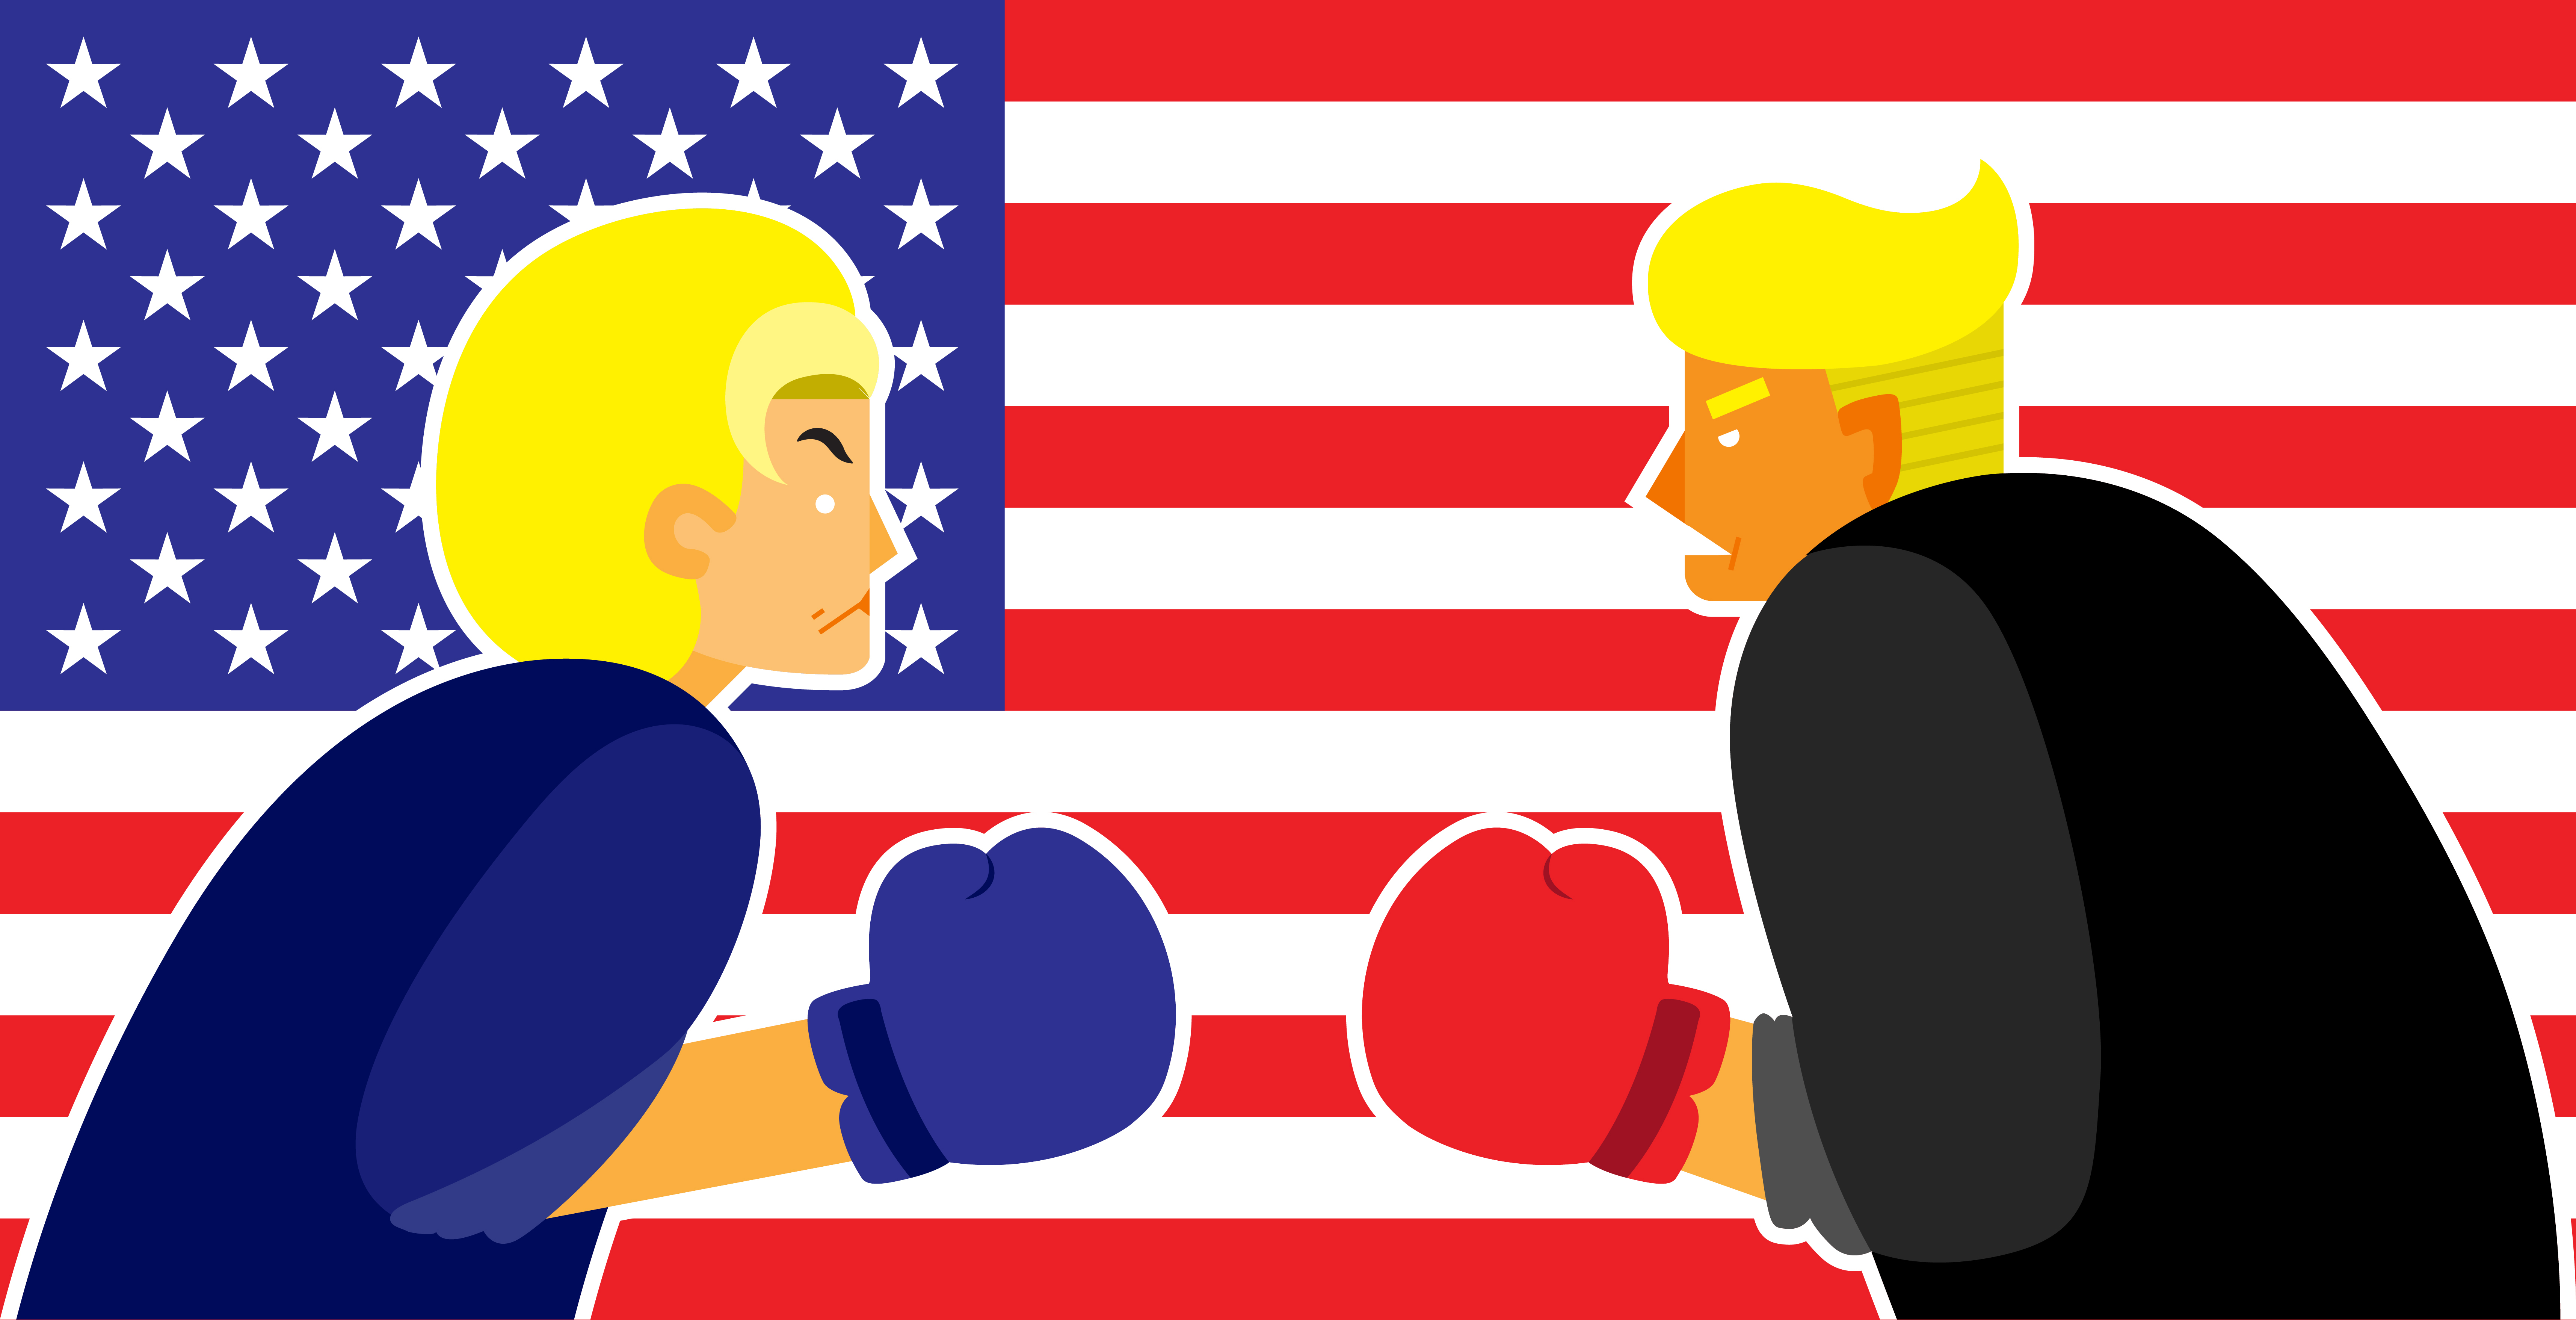 Political presentation power: Lessons from Donald Trump and Hillary Clinton's US presidential TV showdown